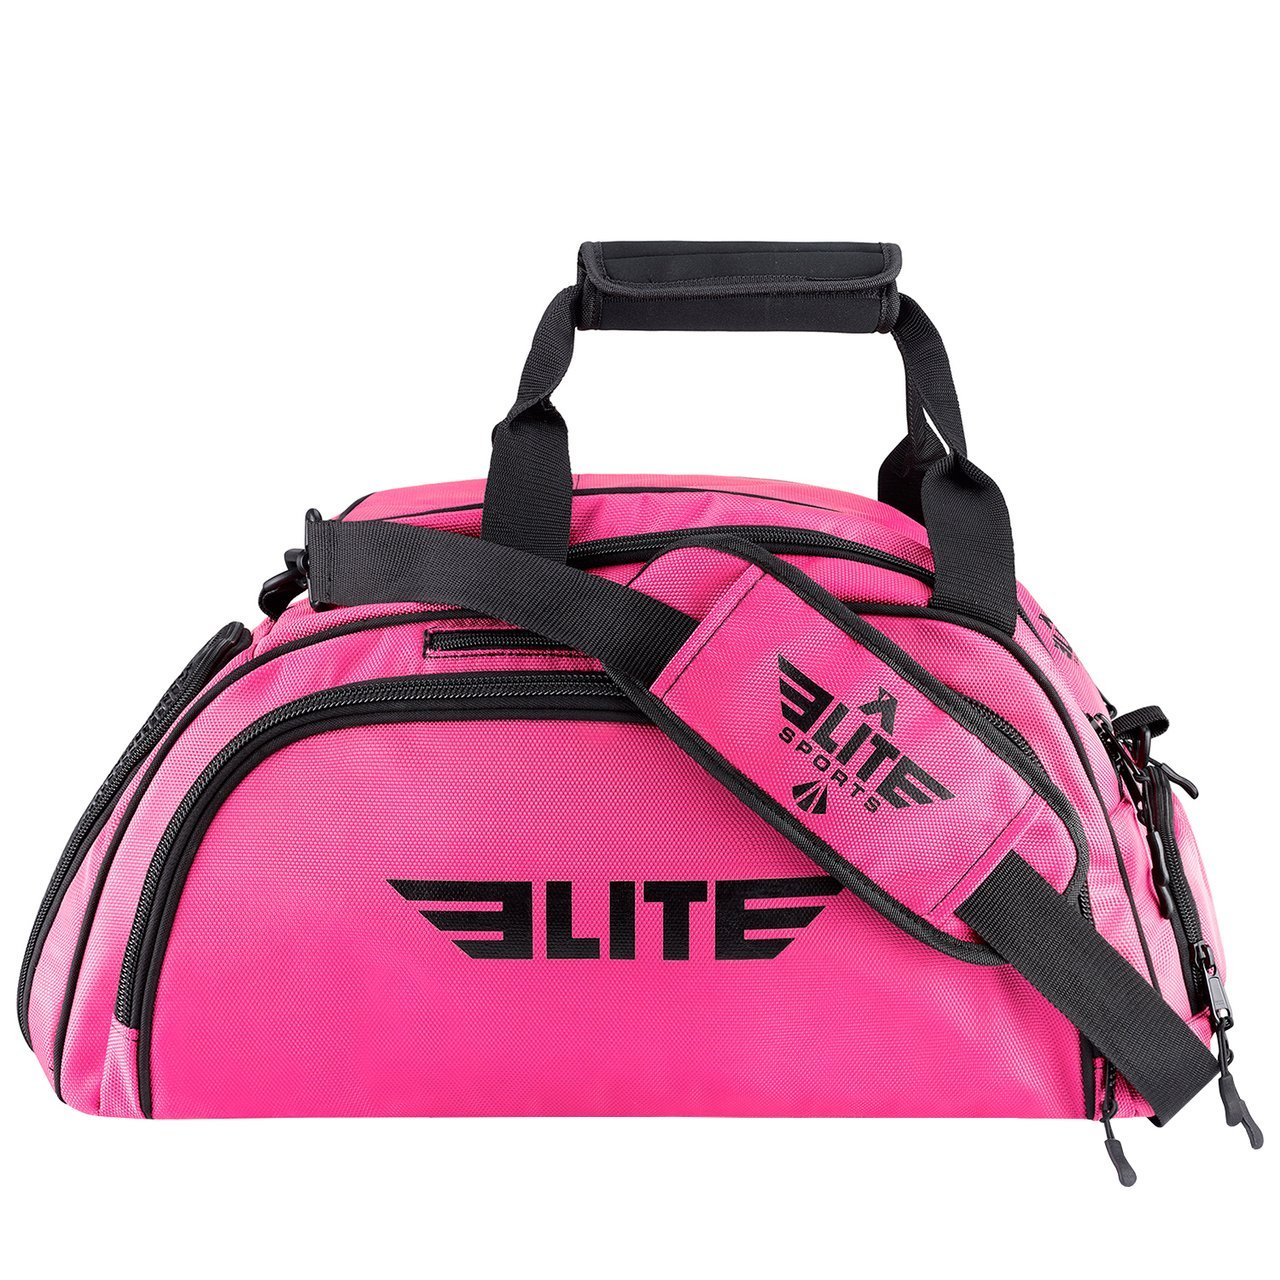 Load image into Gallery viewer, Elite Sports Warrior Series Pink Large Duffel Judo Gear Gym Bag & Backpack